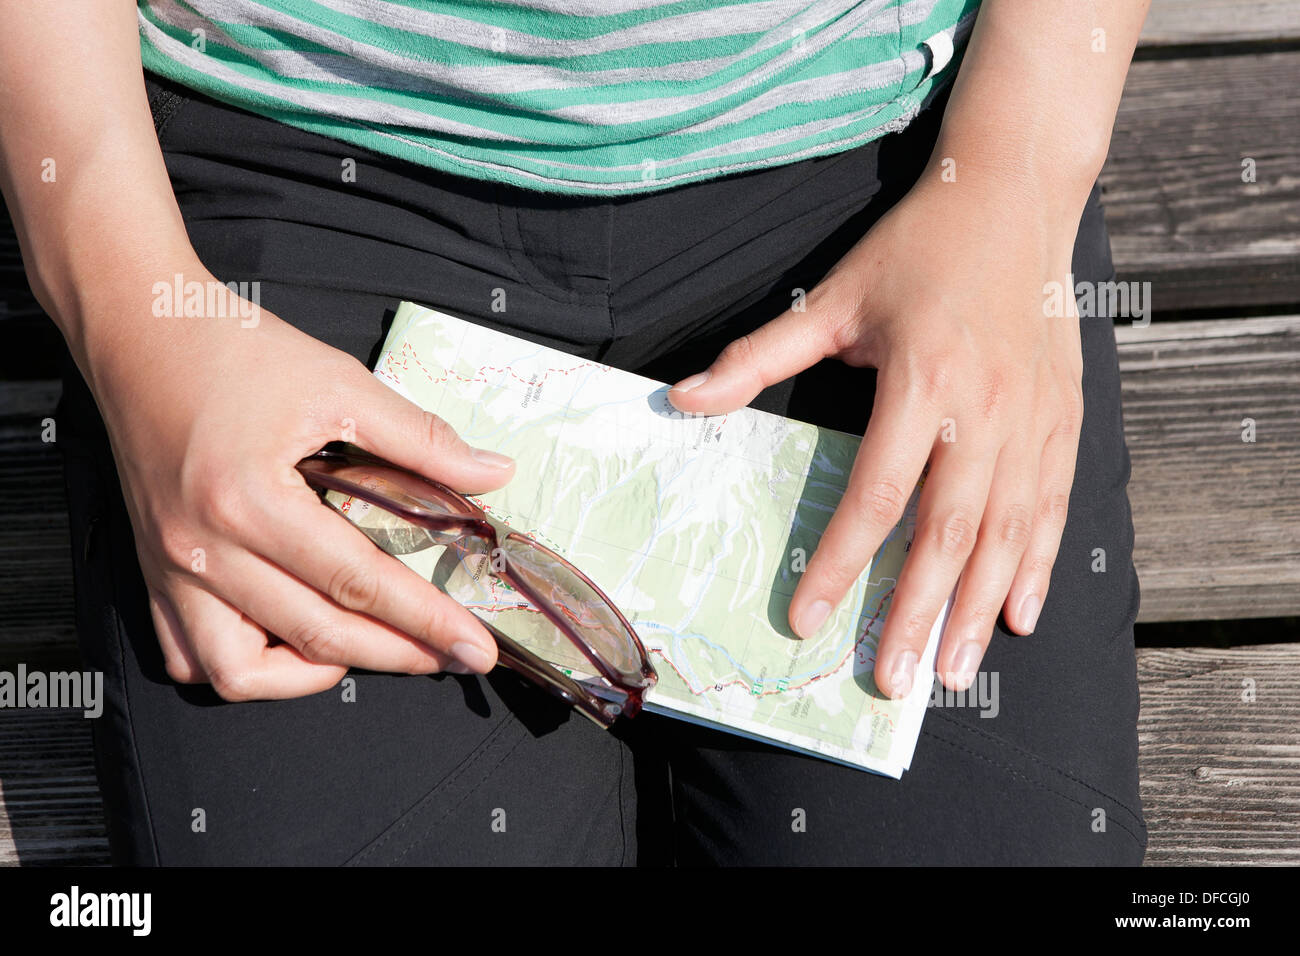 Austria, Young woman holding sunglasses and hiking map, close up - Stock Image